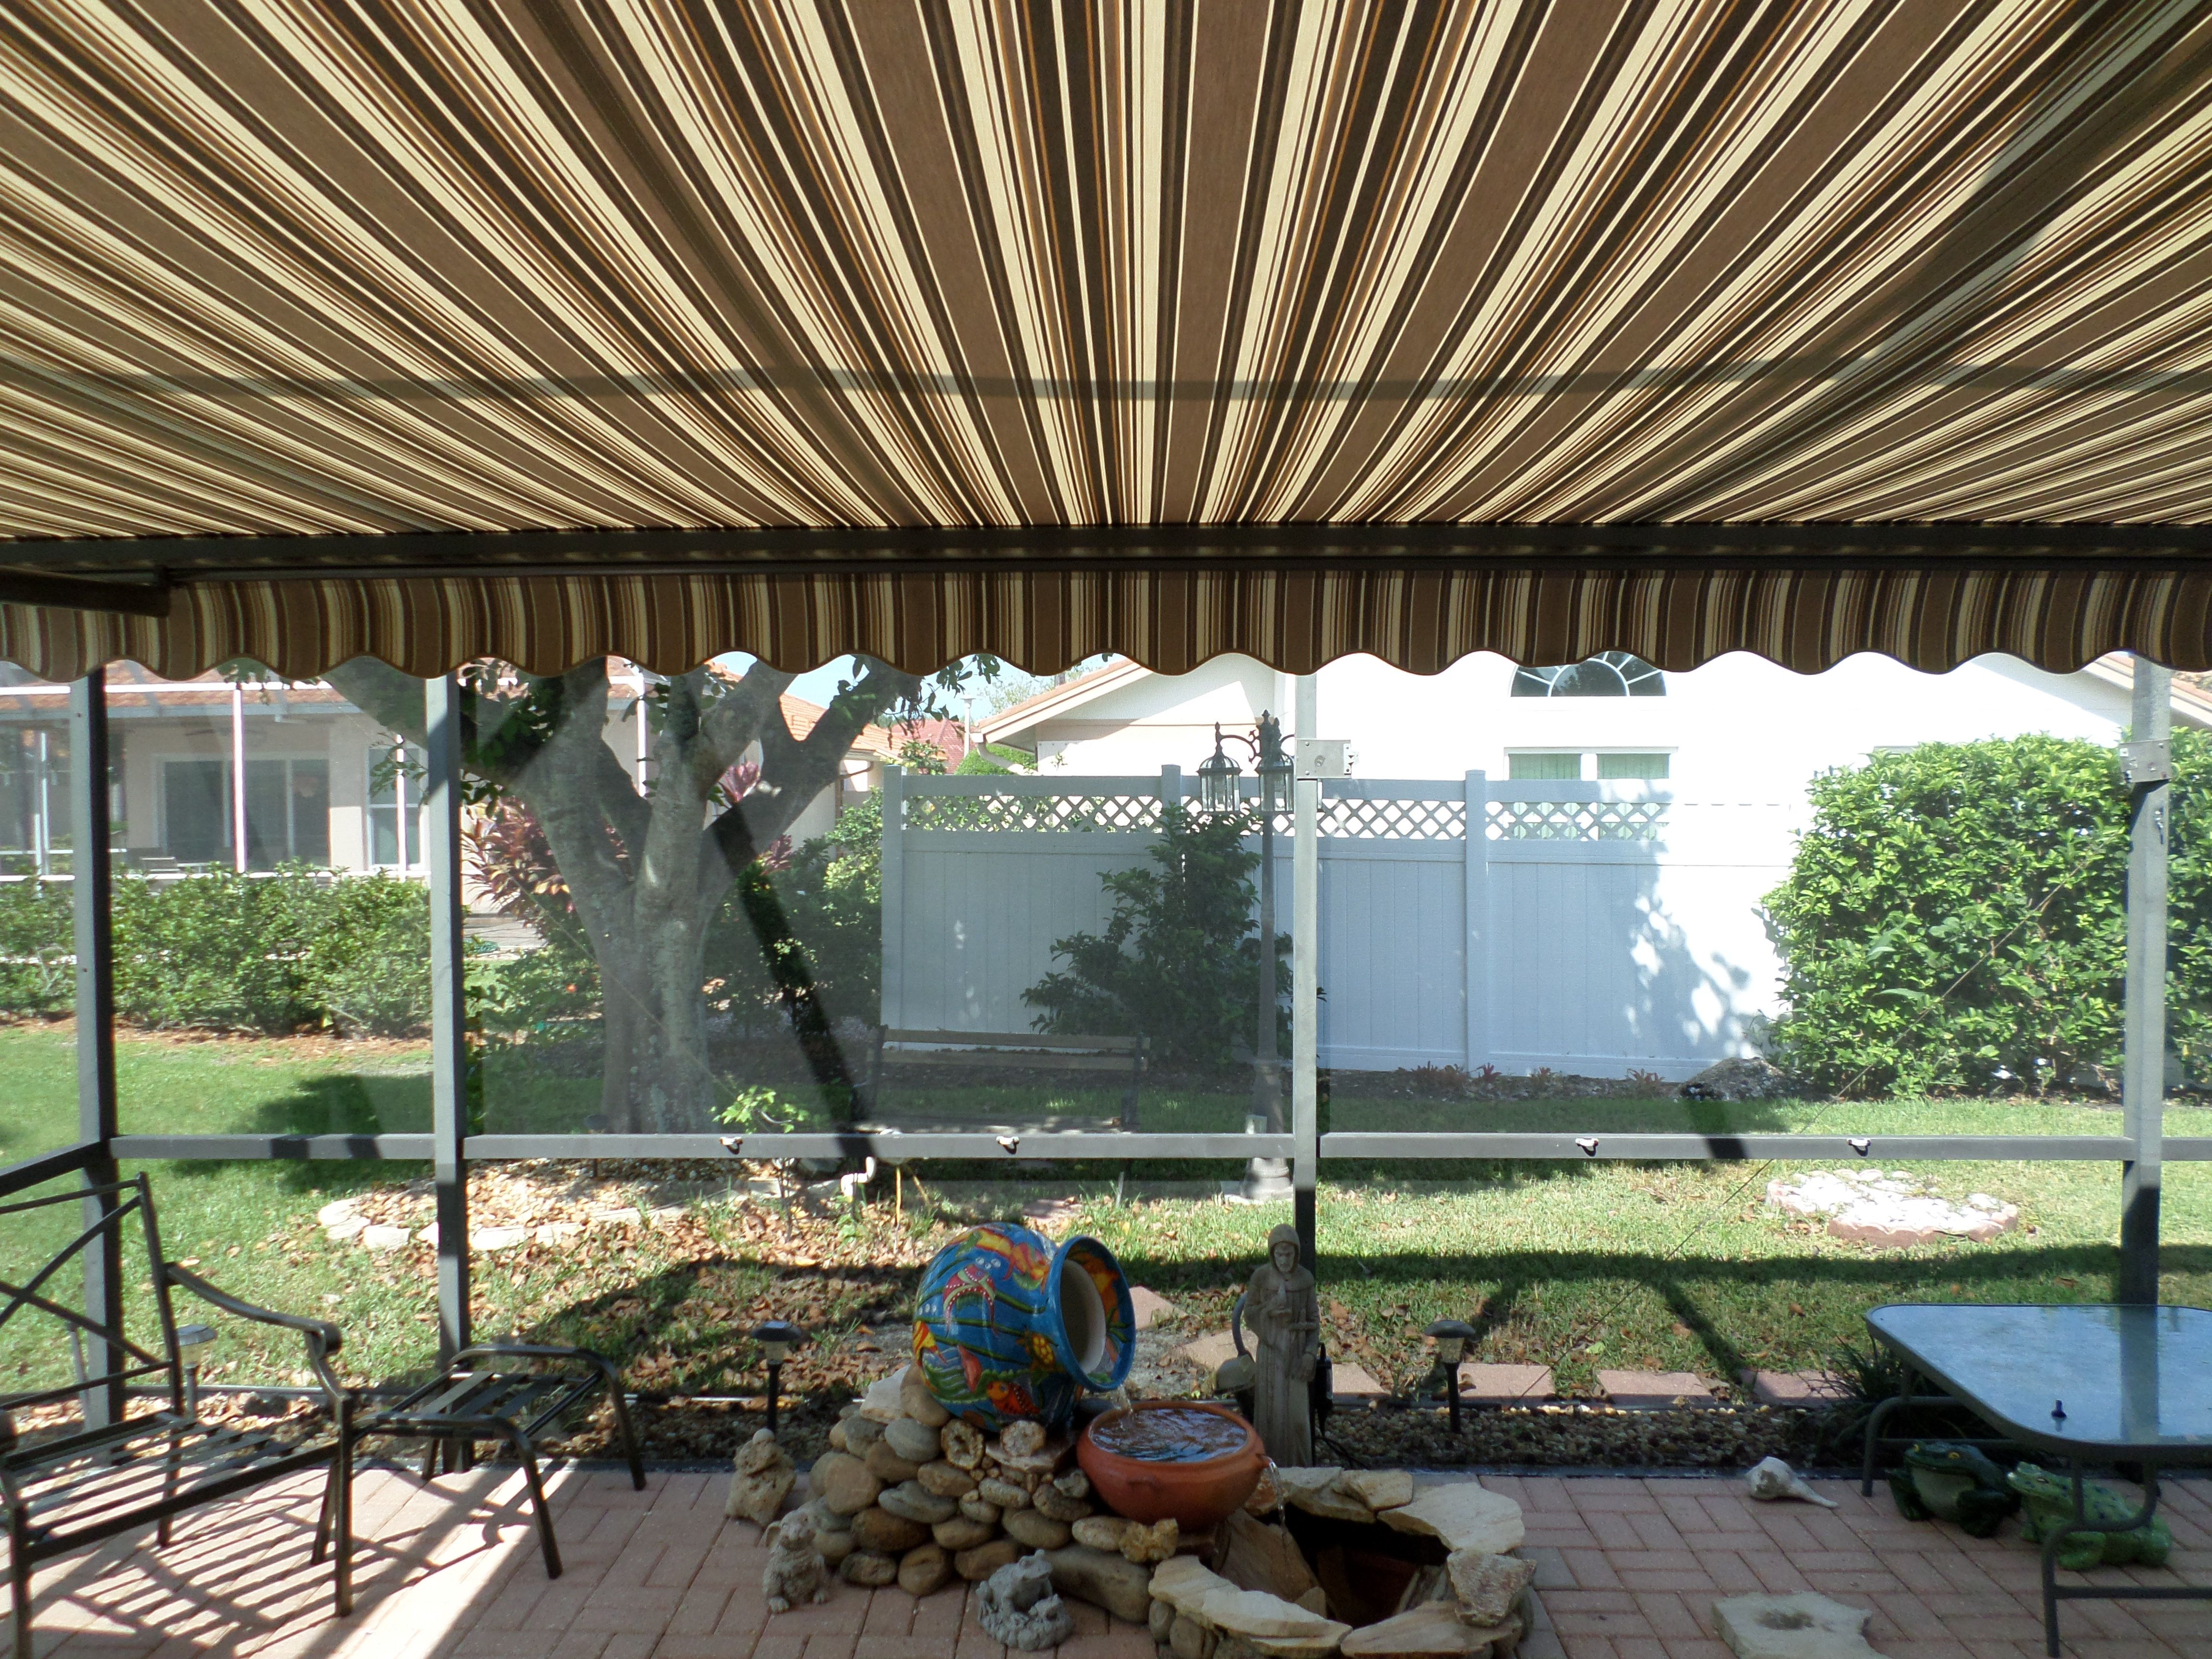 Lovely Back Patio Awning For Shade In The Afternoon.